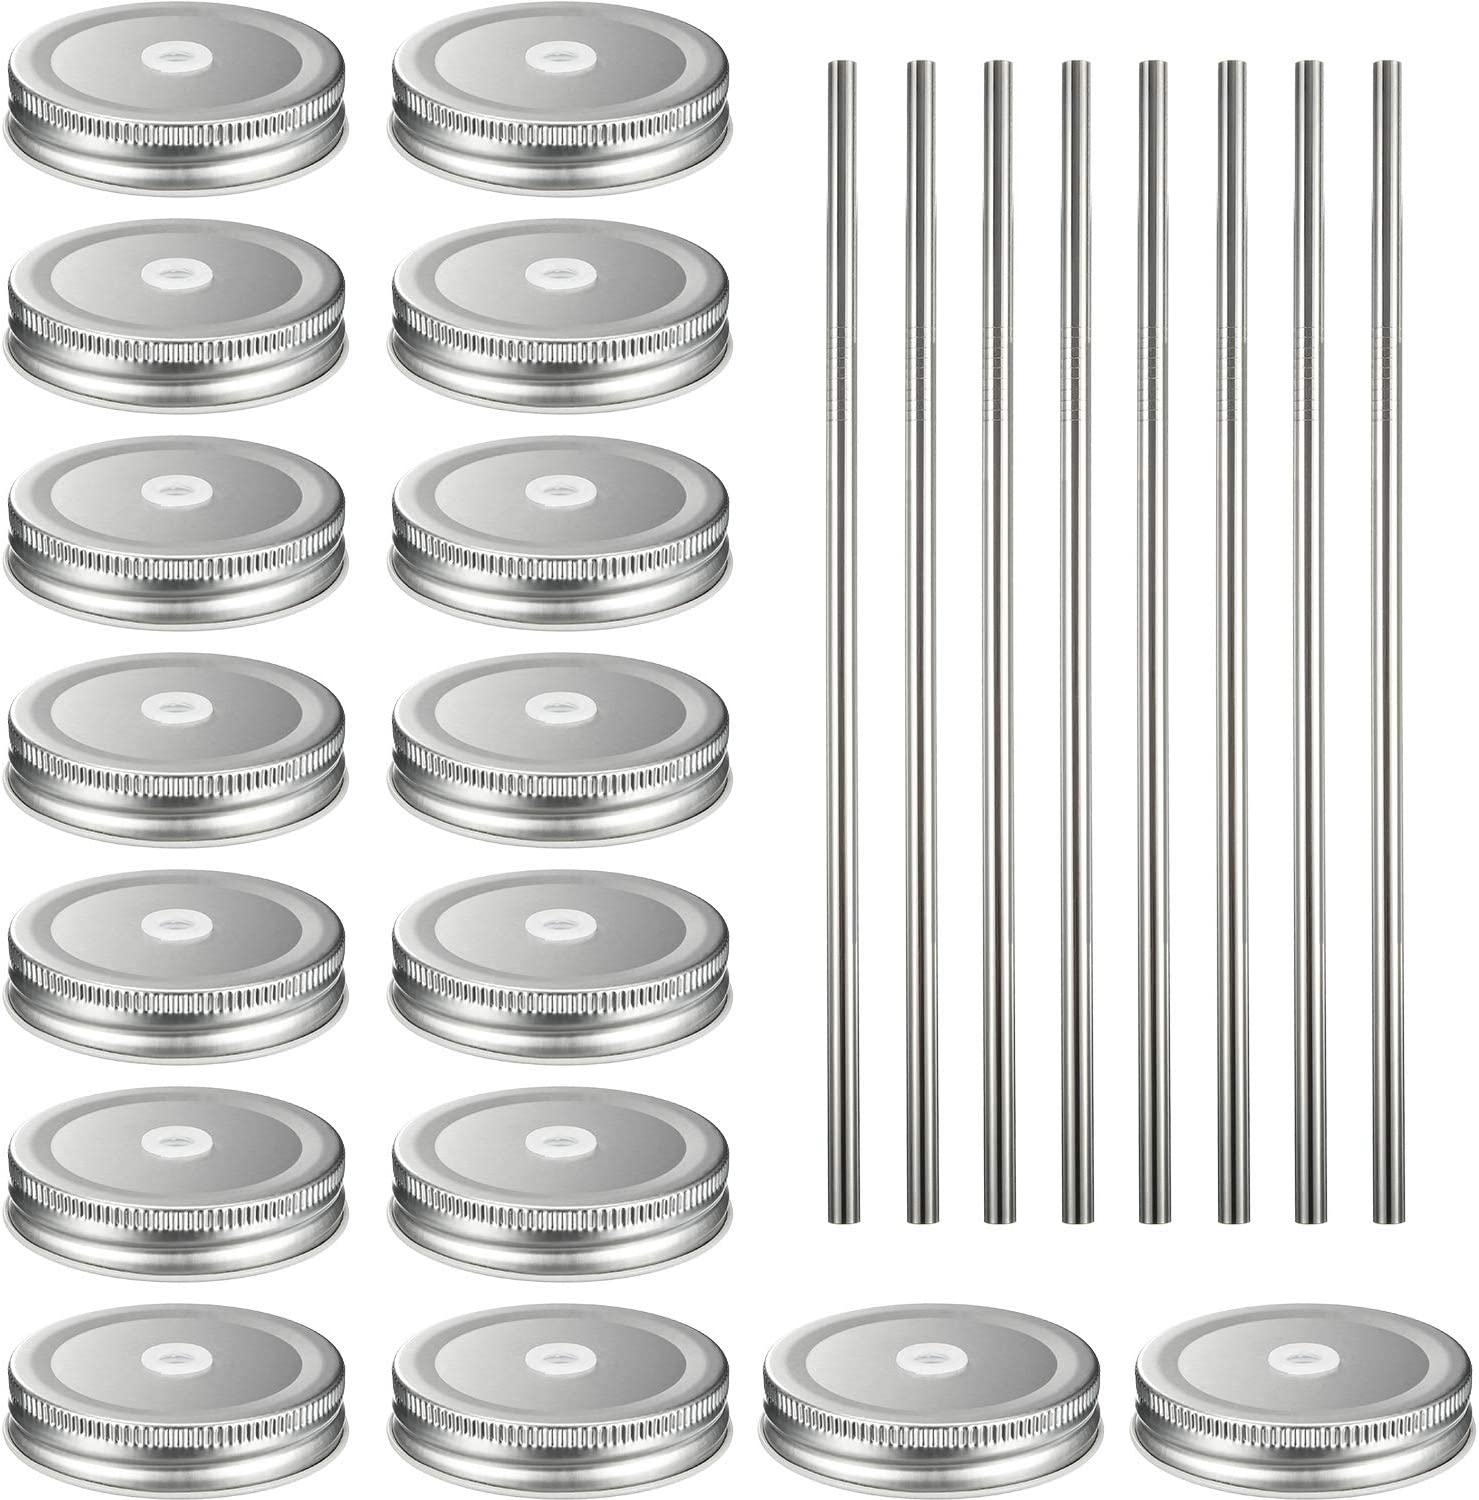 16 Ranking TOP12 Pack Regular Mouth Colorado Springs Mall Lids with Packs Str Stainless 18 8 Steel